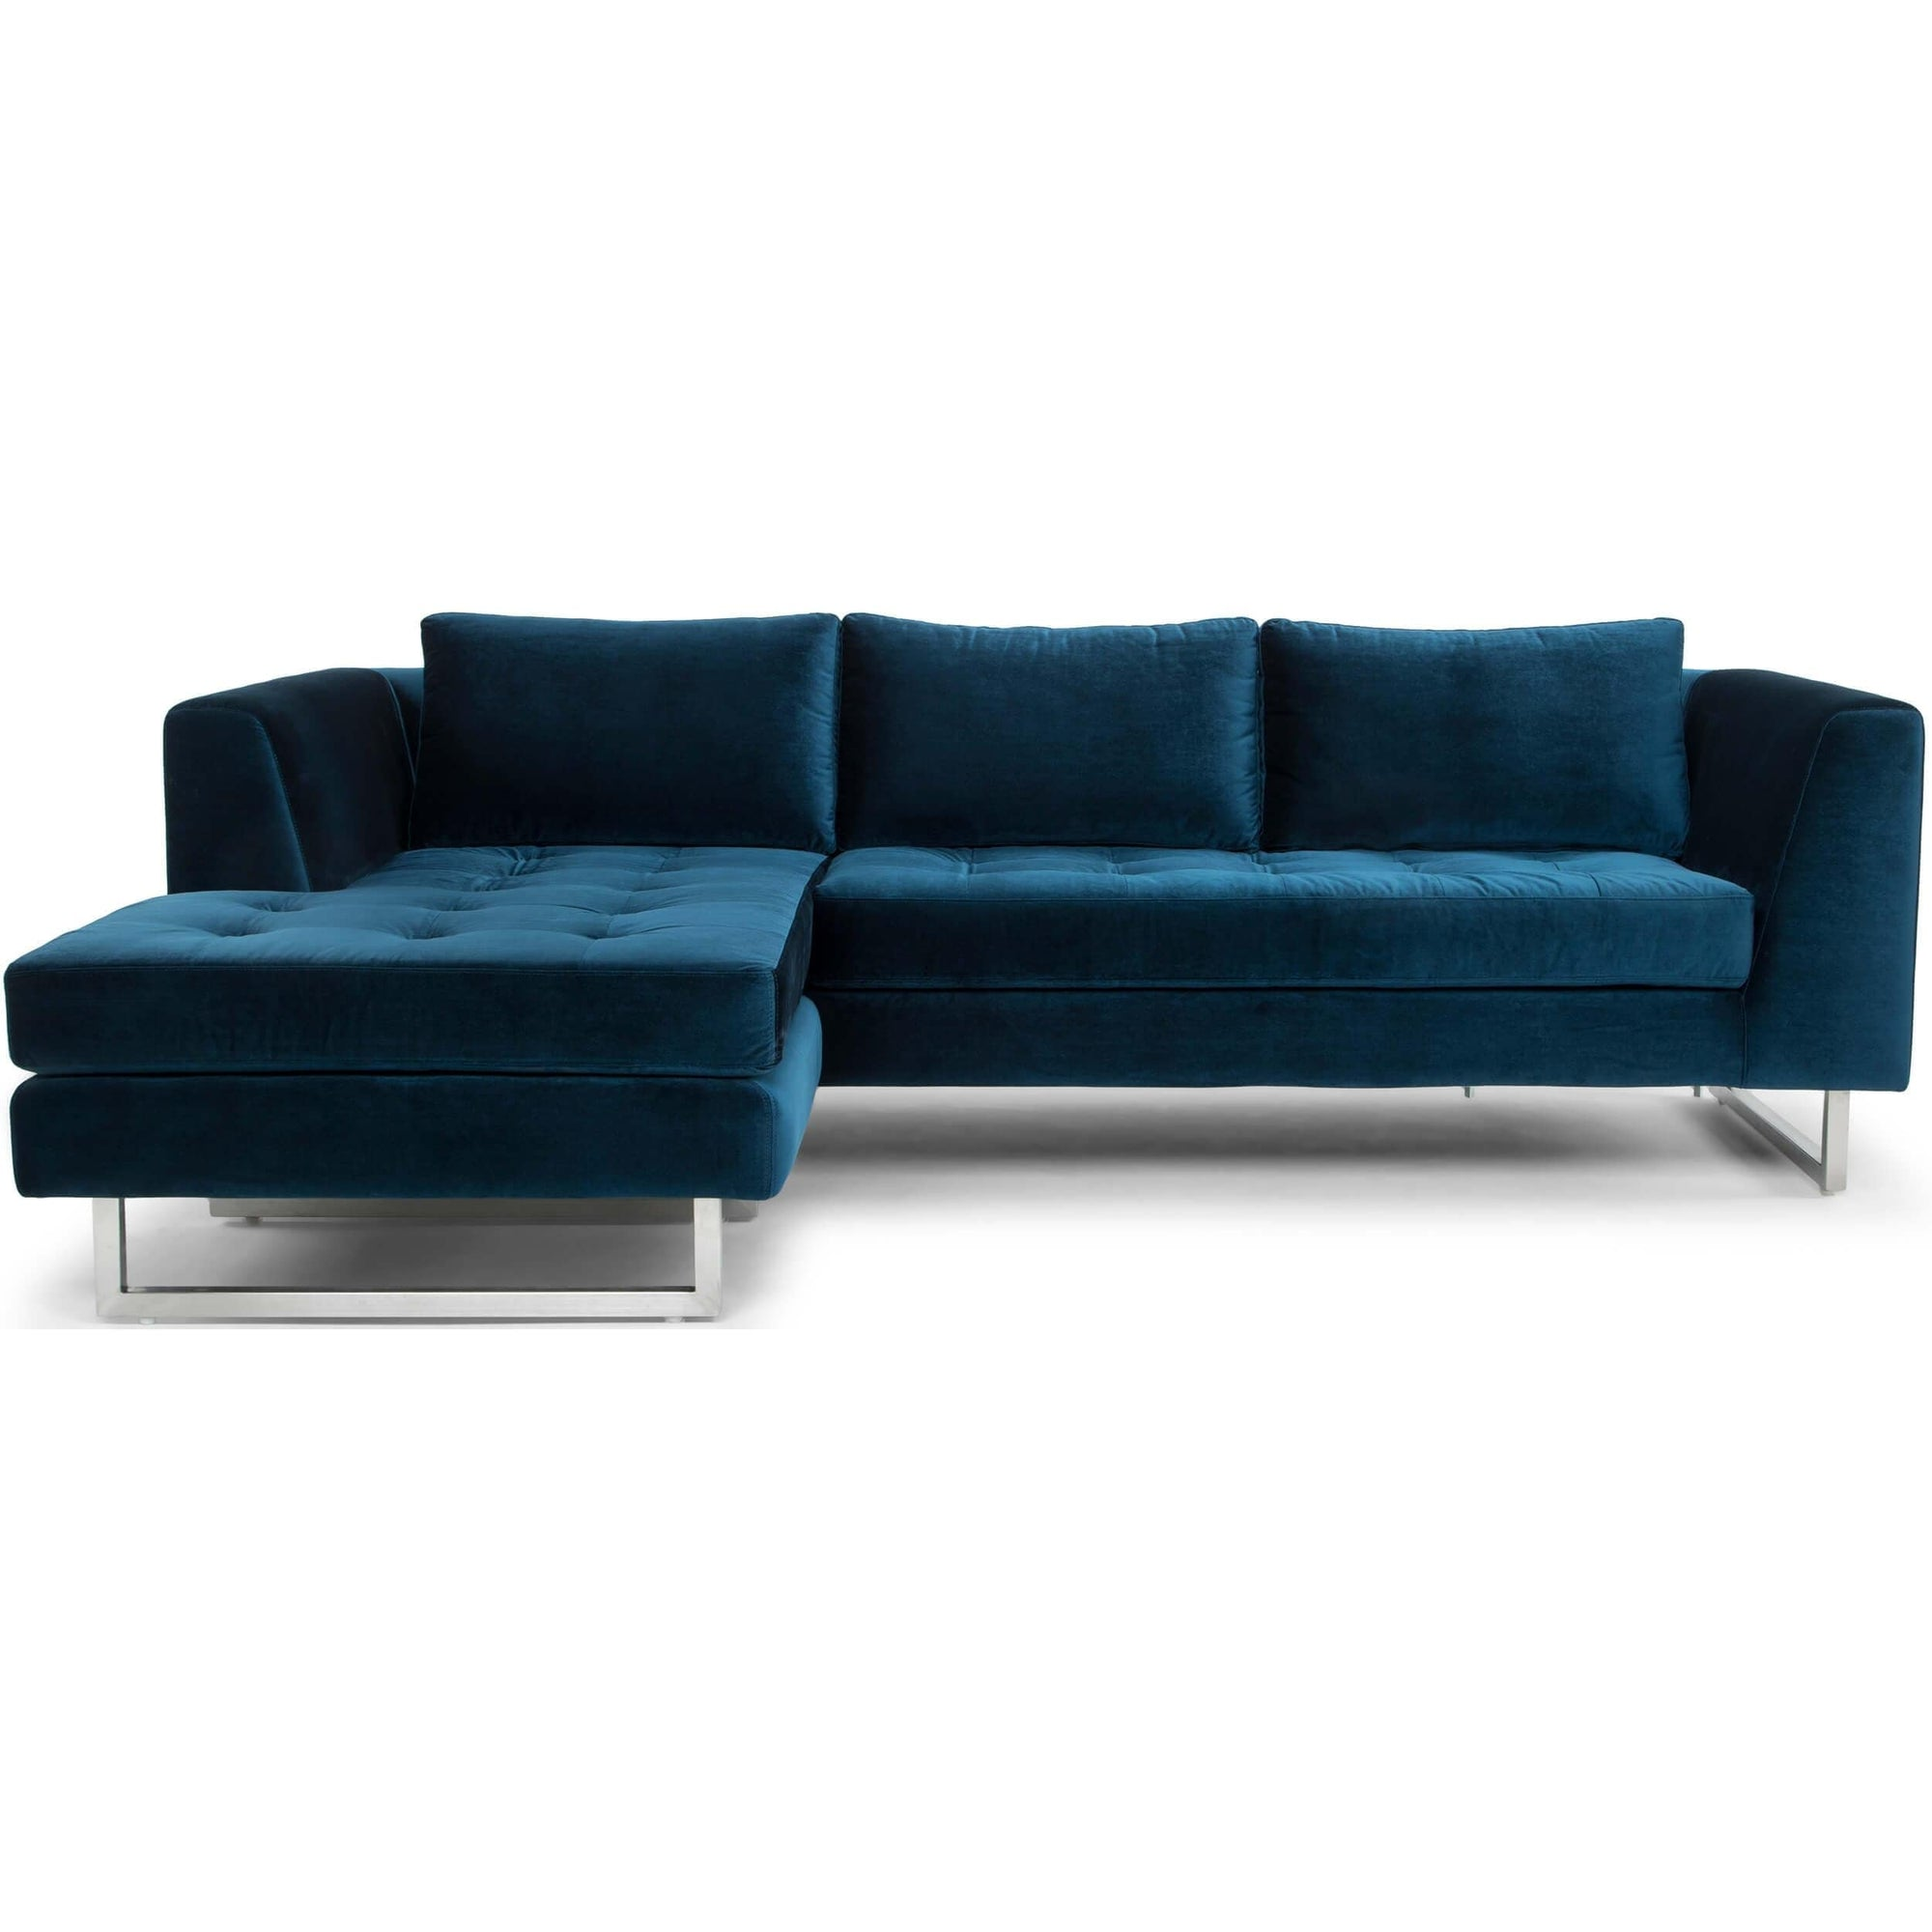 Remarkable Matthew Sectional Midnight Blue High Fashion Home Ocoug Best Dining Table And Chair Ideas Images Ocougorg